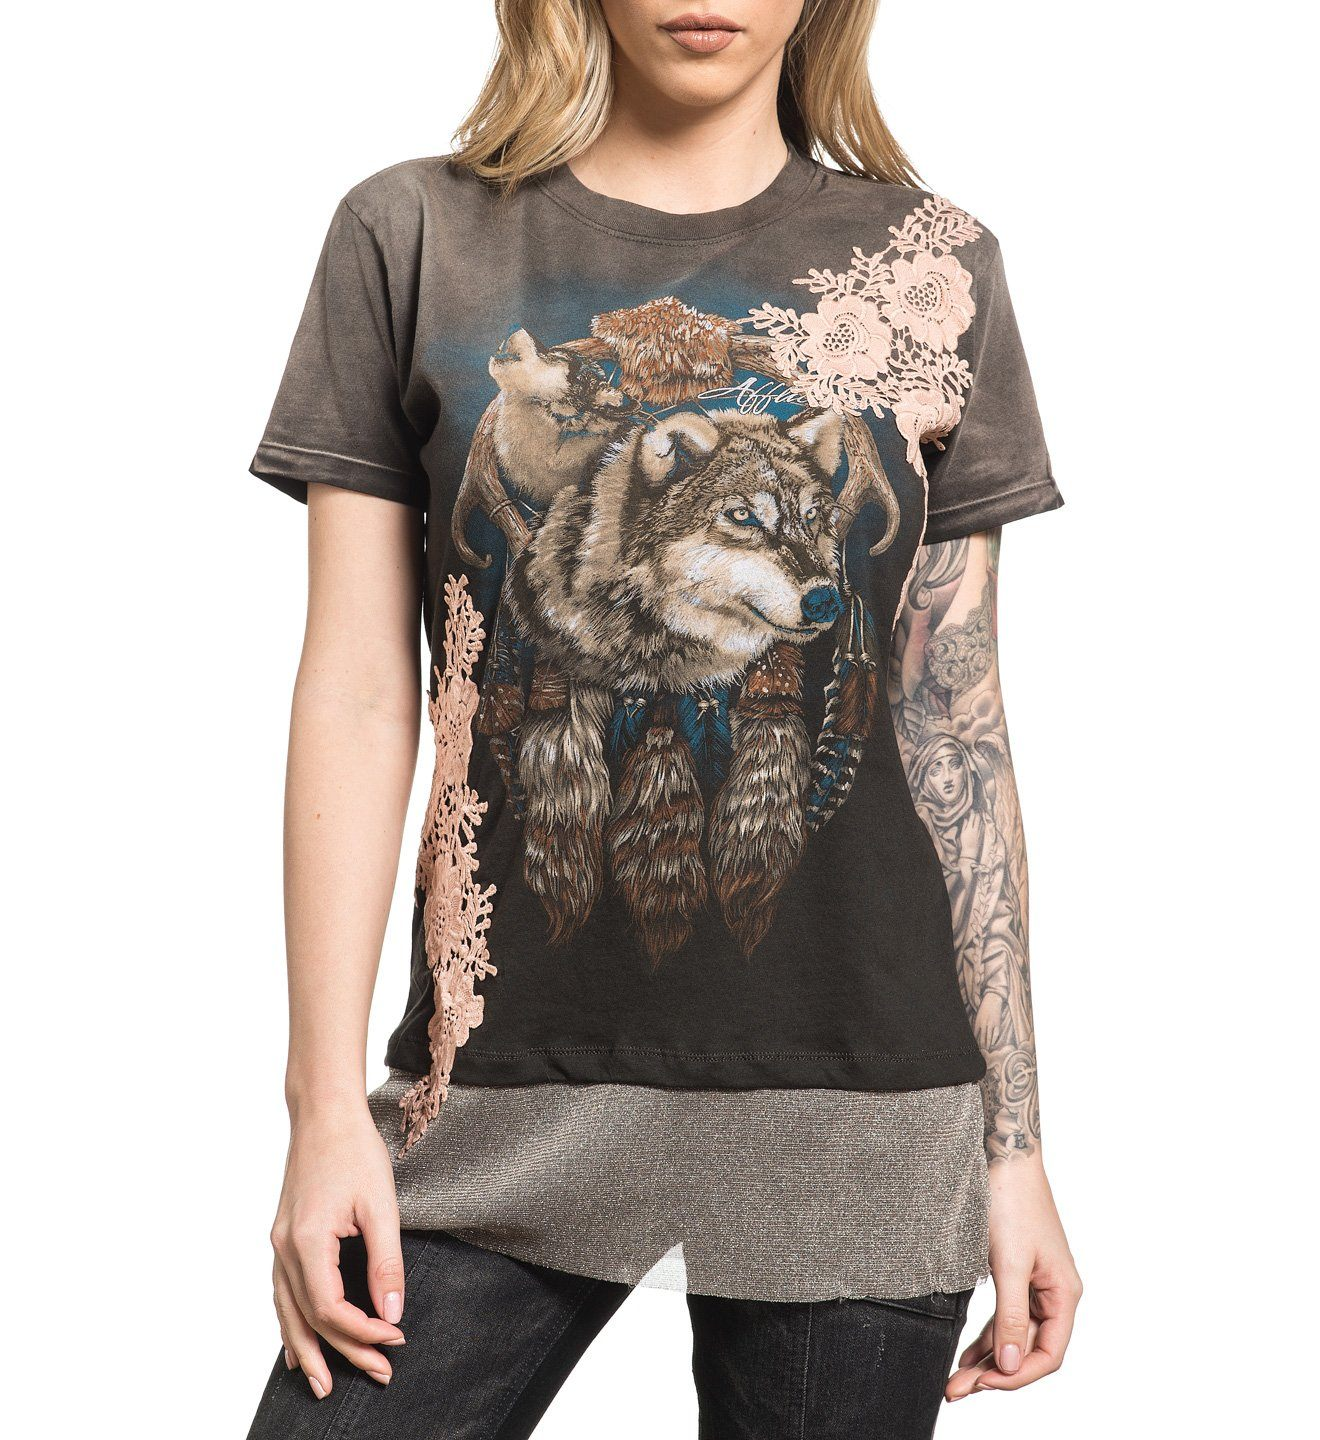 Hounds Tooth - Womens Short Sleeve Tees - Affliction Clothing